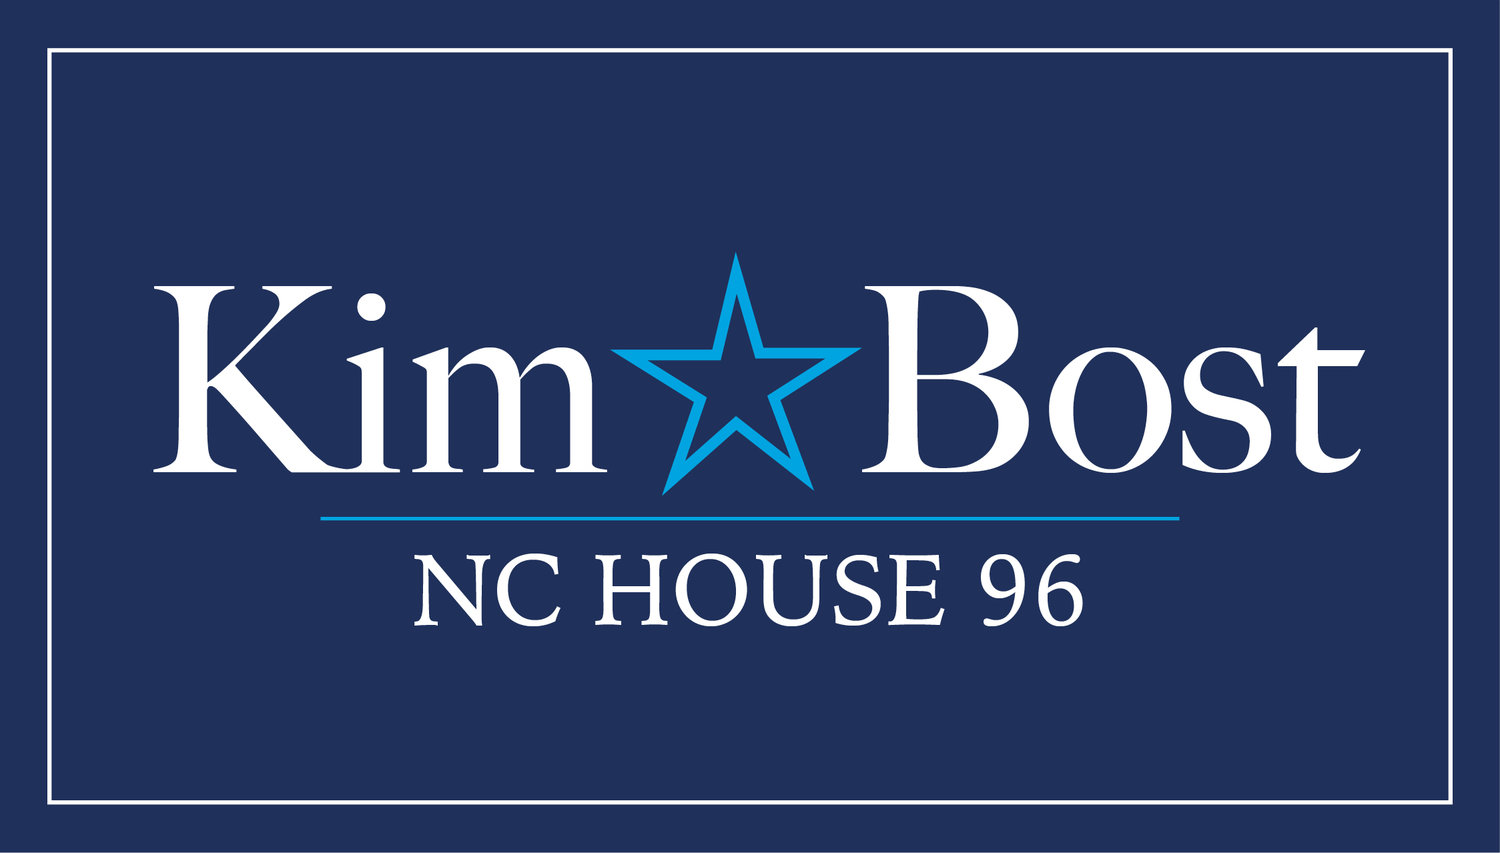 Kim Bost for NC House 96